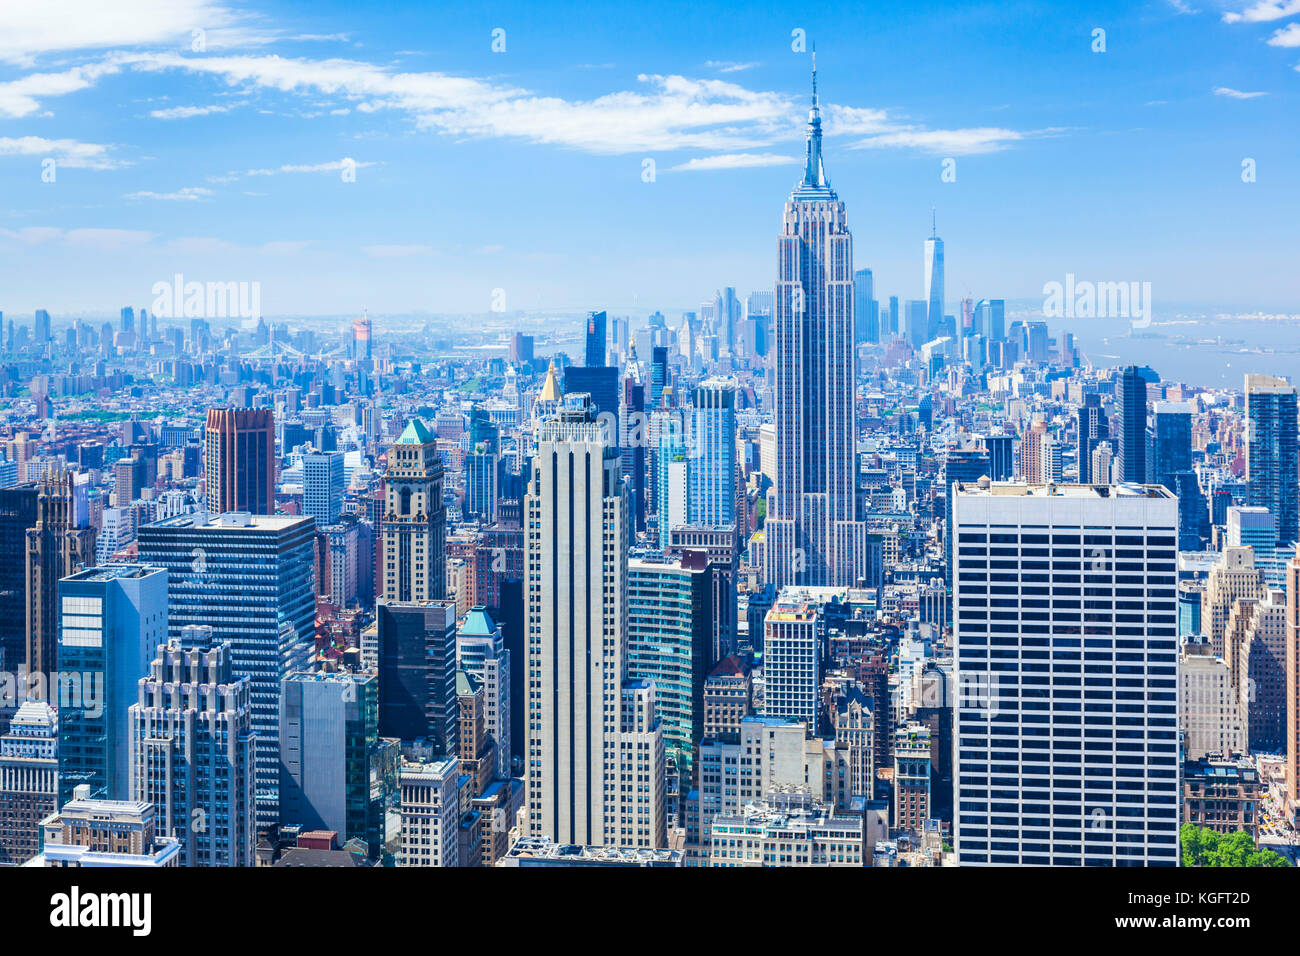 Manhattan Skyline, New York Skyline, Empire State Building, New York City, Vereinigte Staaten von Amerika, Nordamerika, Stockbild